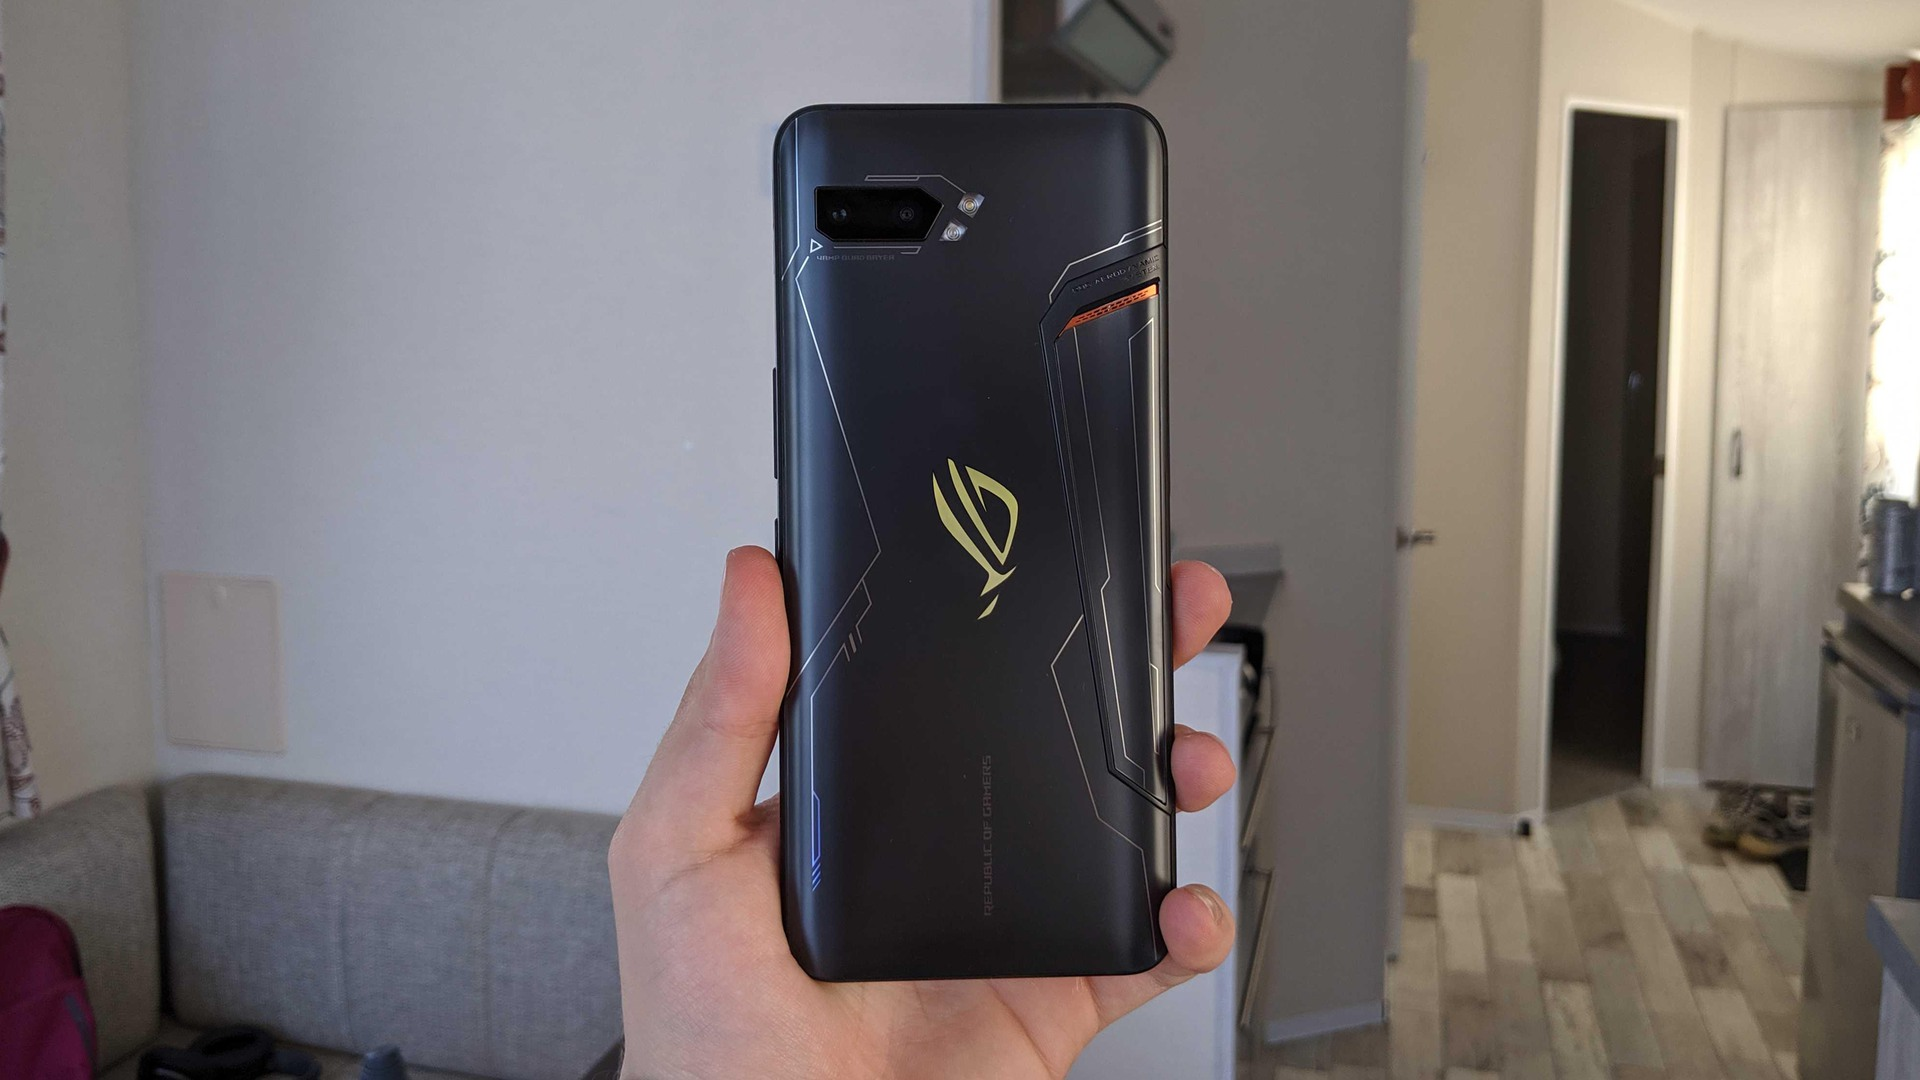 The ROG Phone 3 will pick up where the ROG Phone 2 left off.